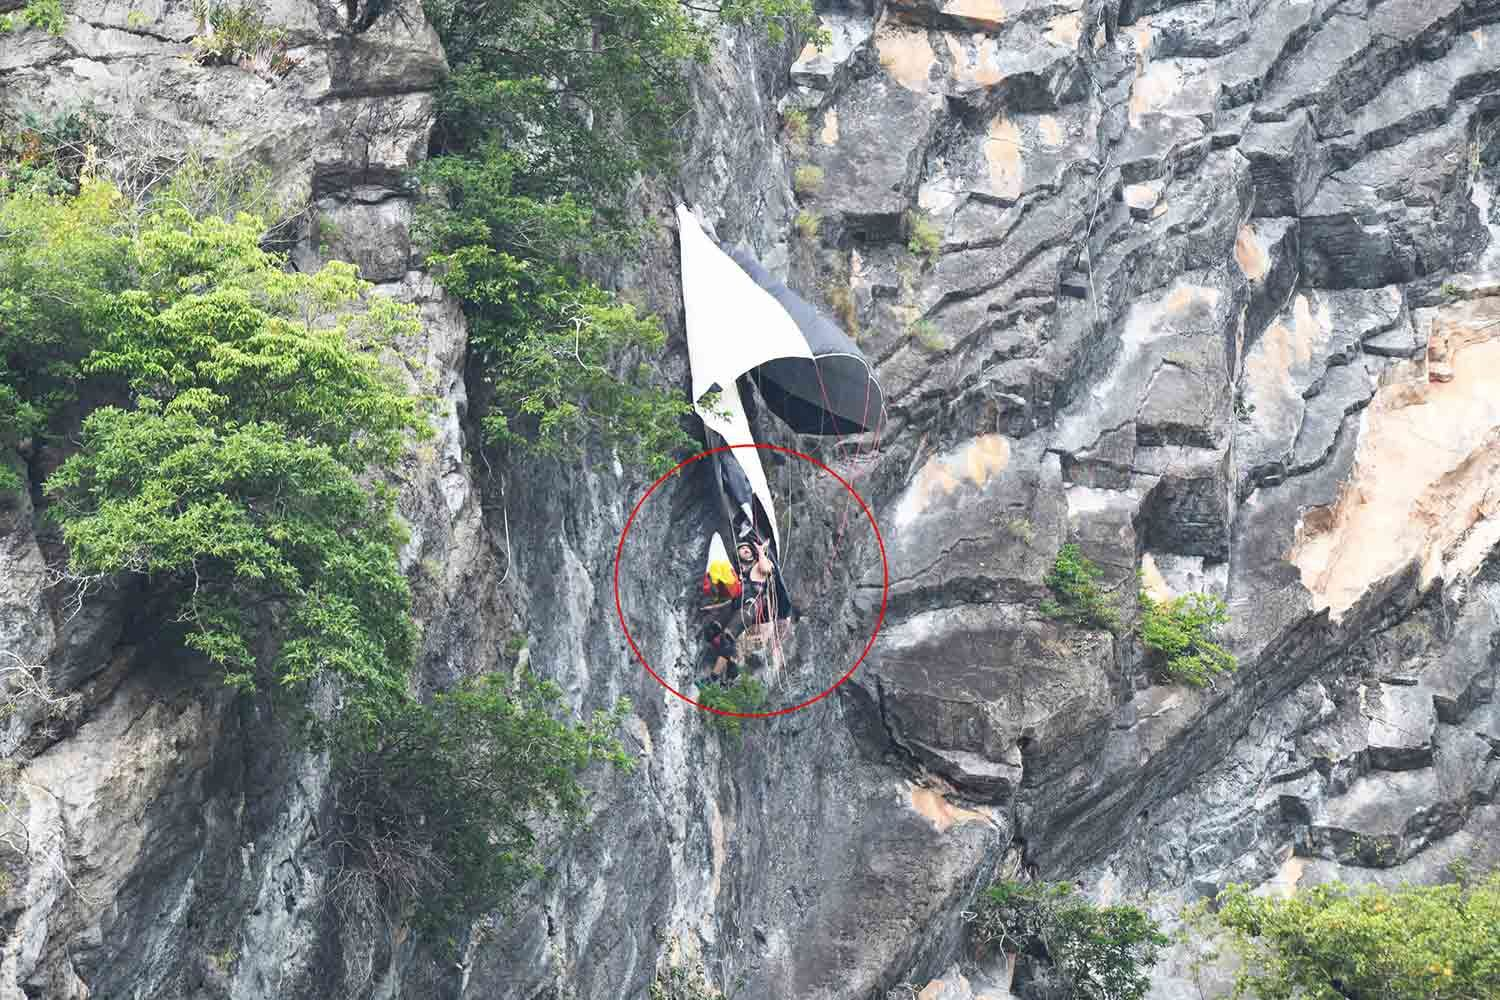 Base jumper rescued after dangling from cliff in Phattalung - UPDATE   News by Thaiger